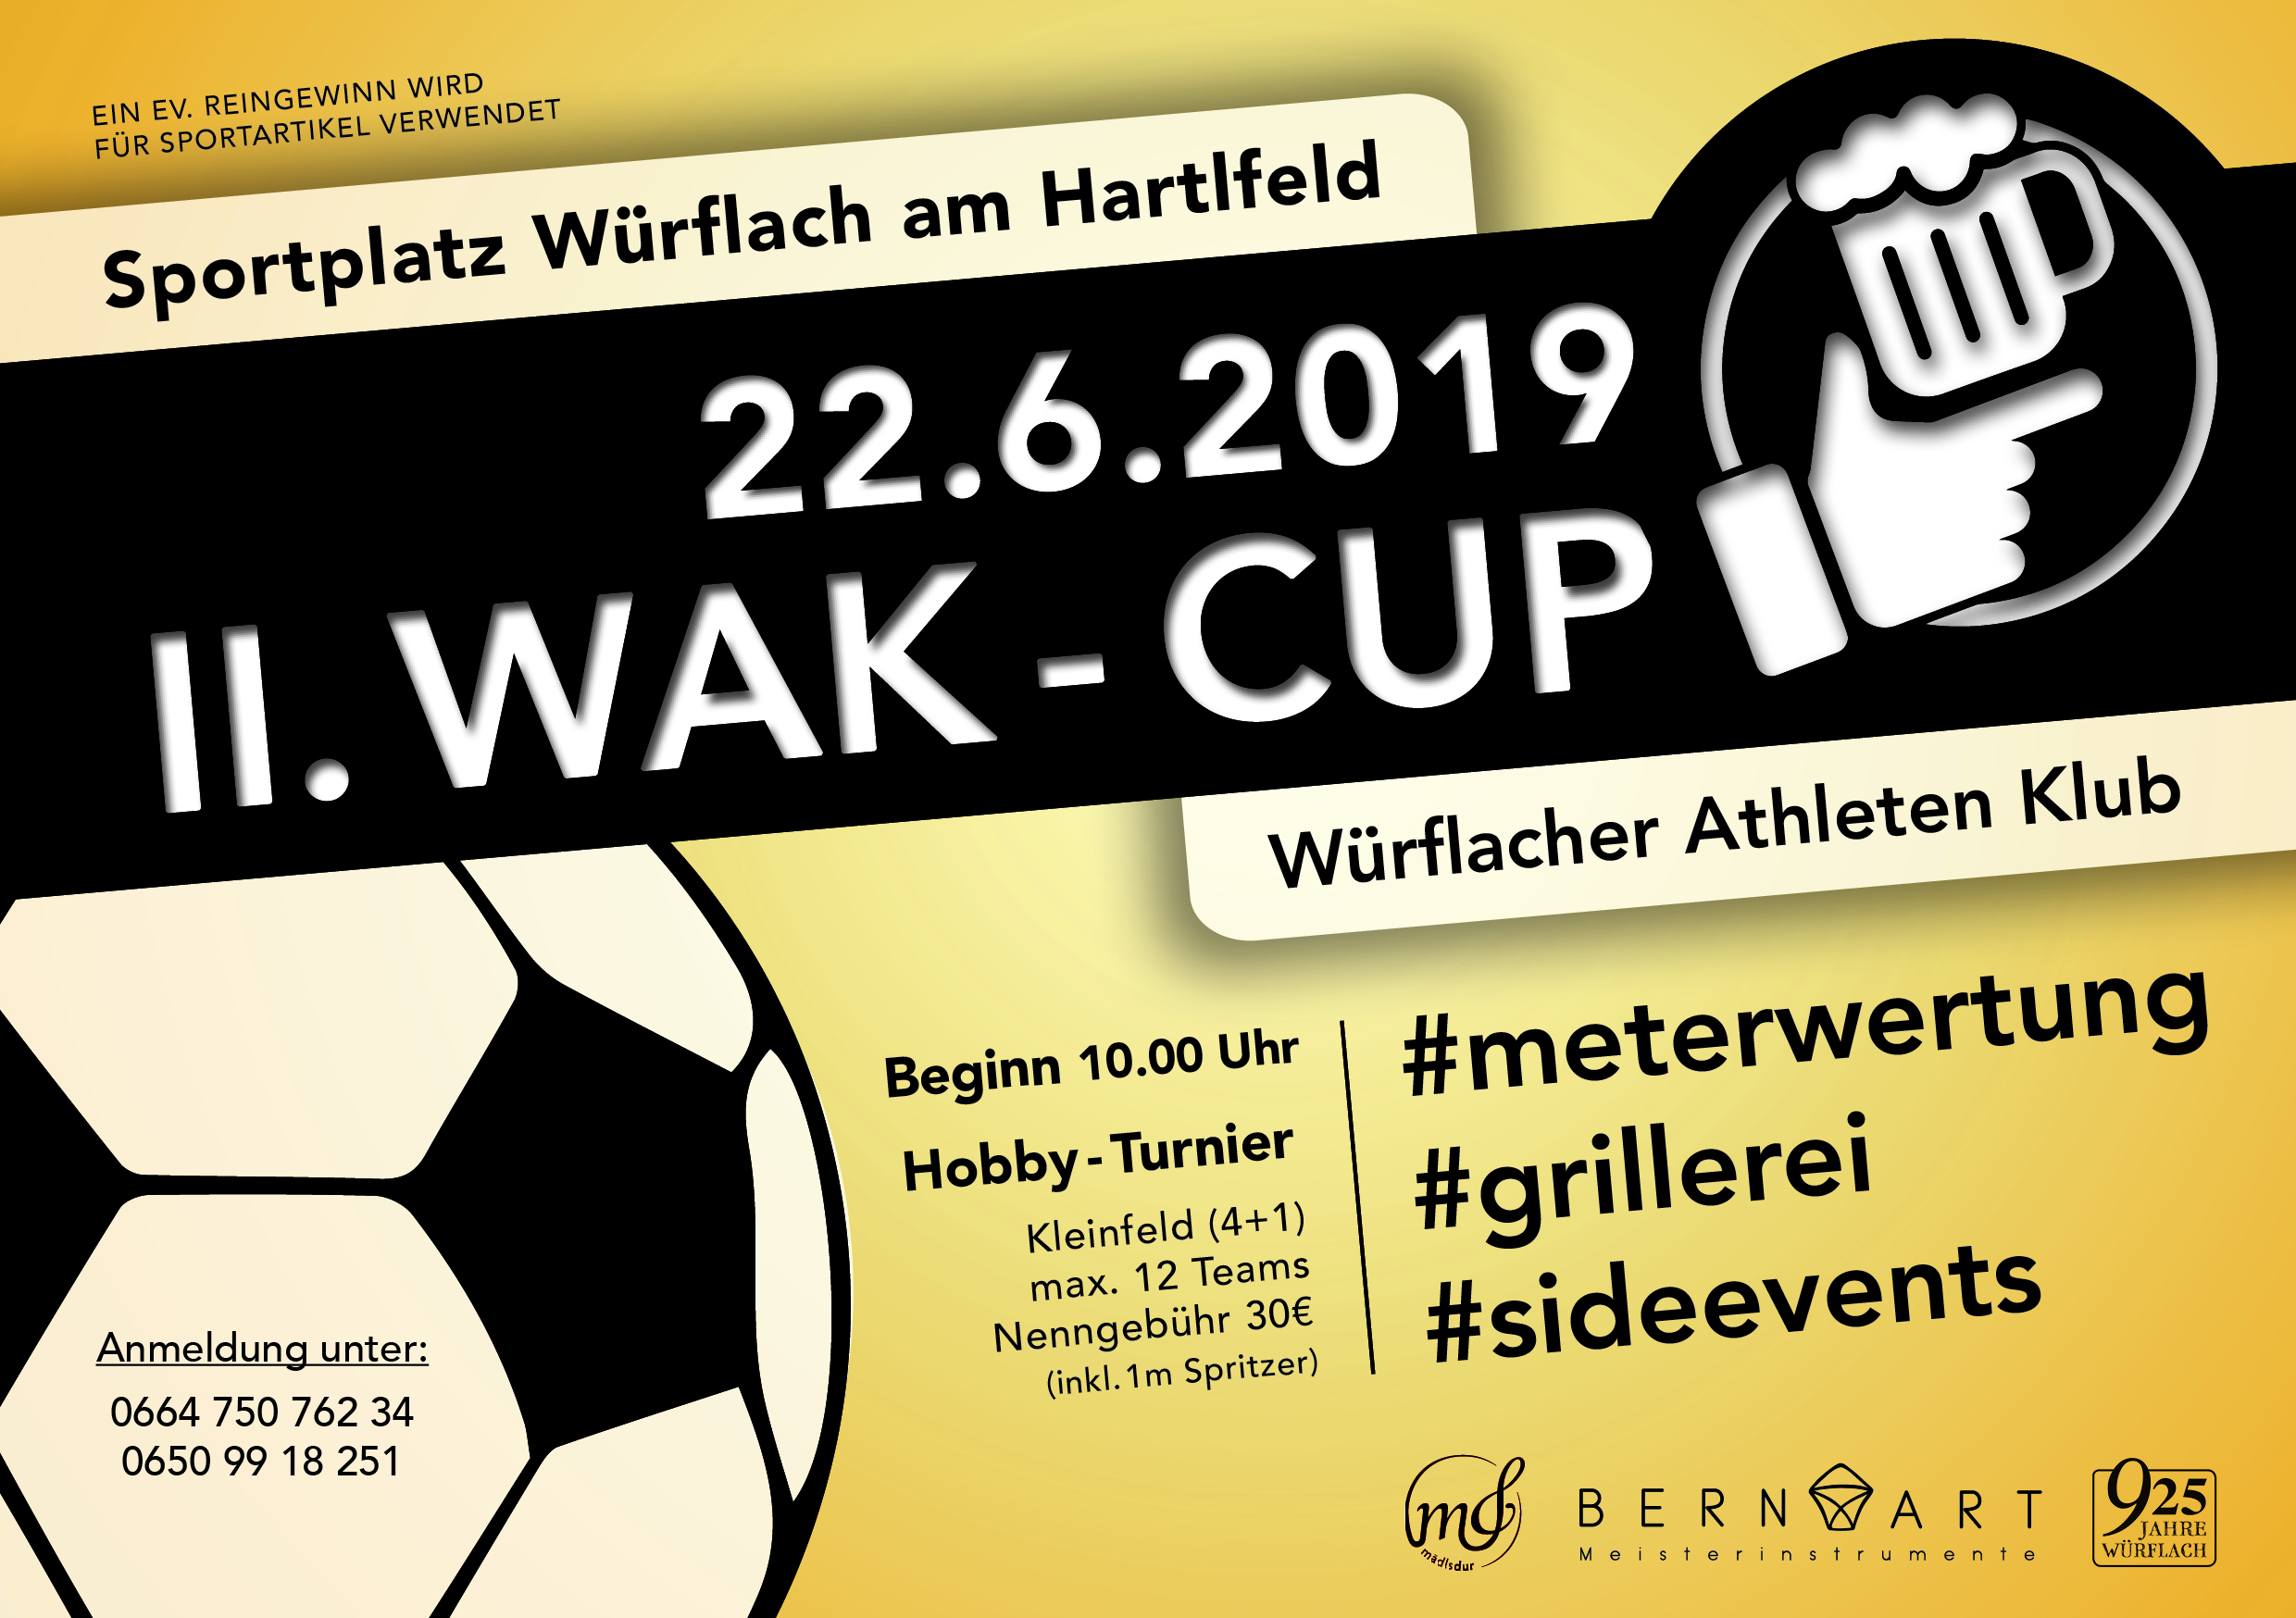 WAK Cup 2262019